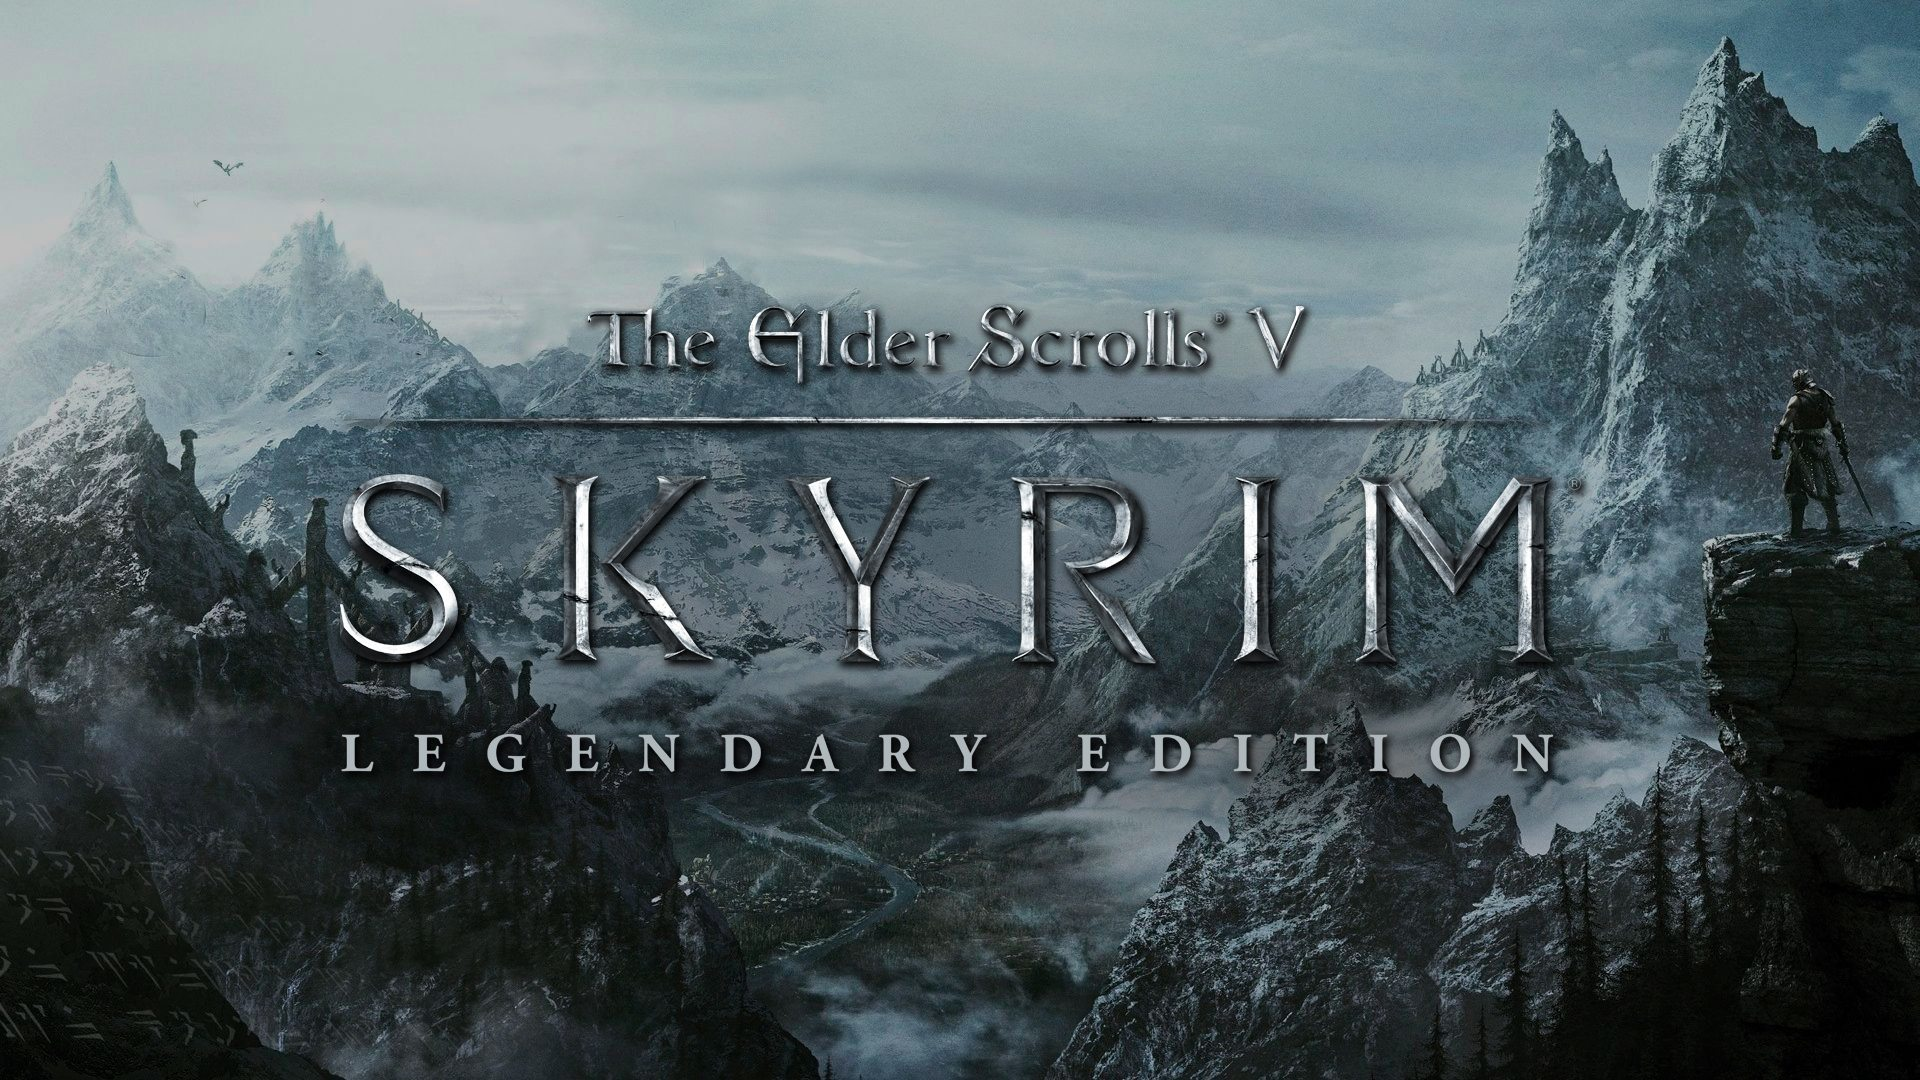 Skyrim Update Version 1.16 Patch Notes PS4 Xbox One PC Full Details Here